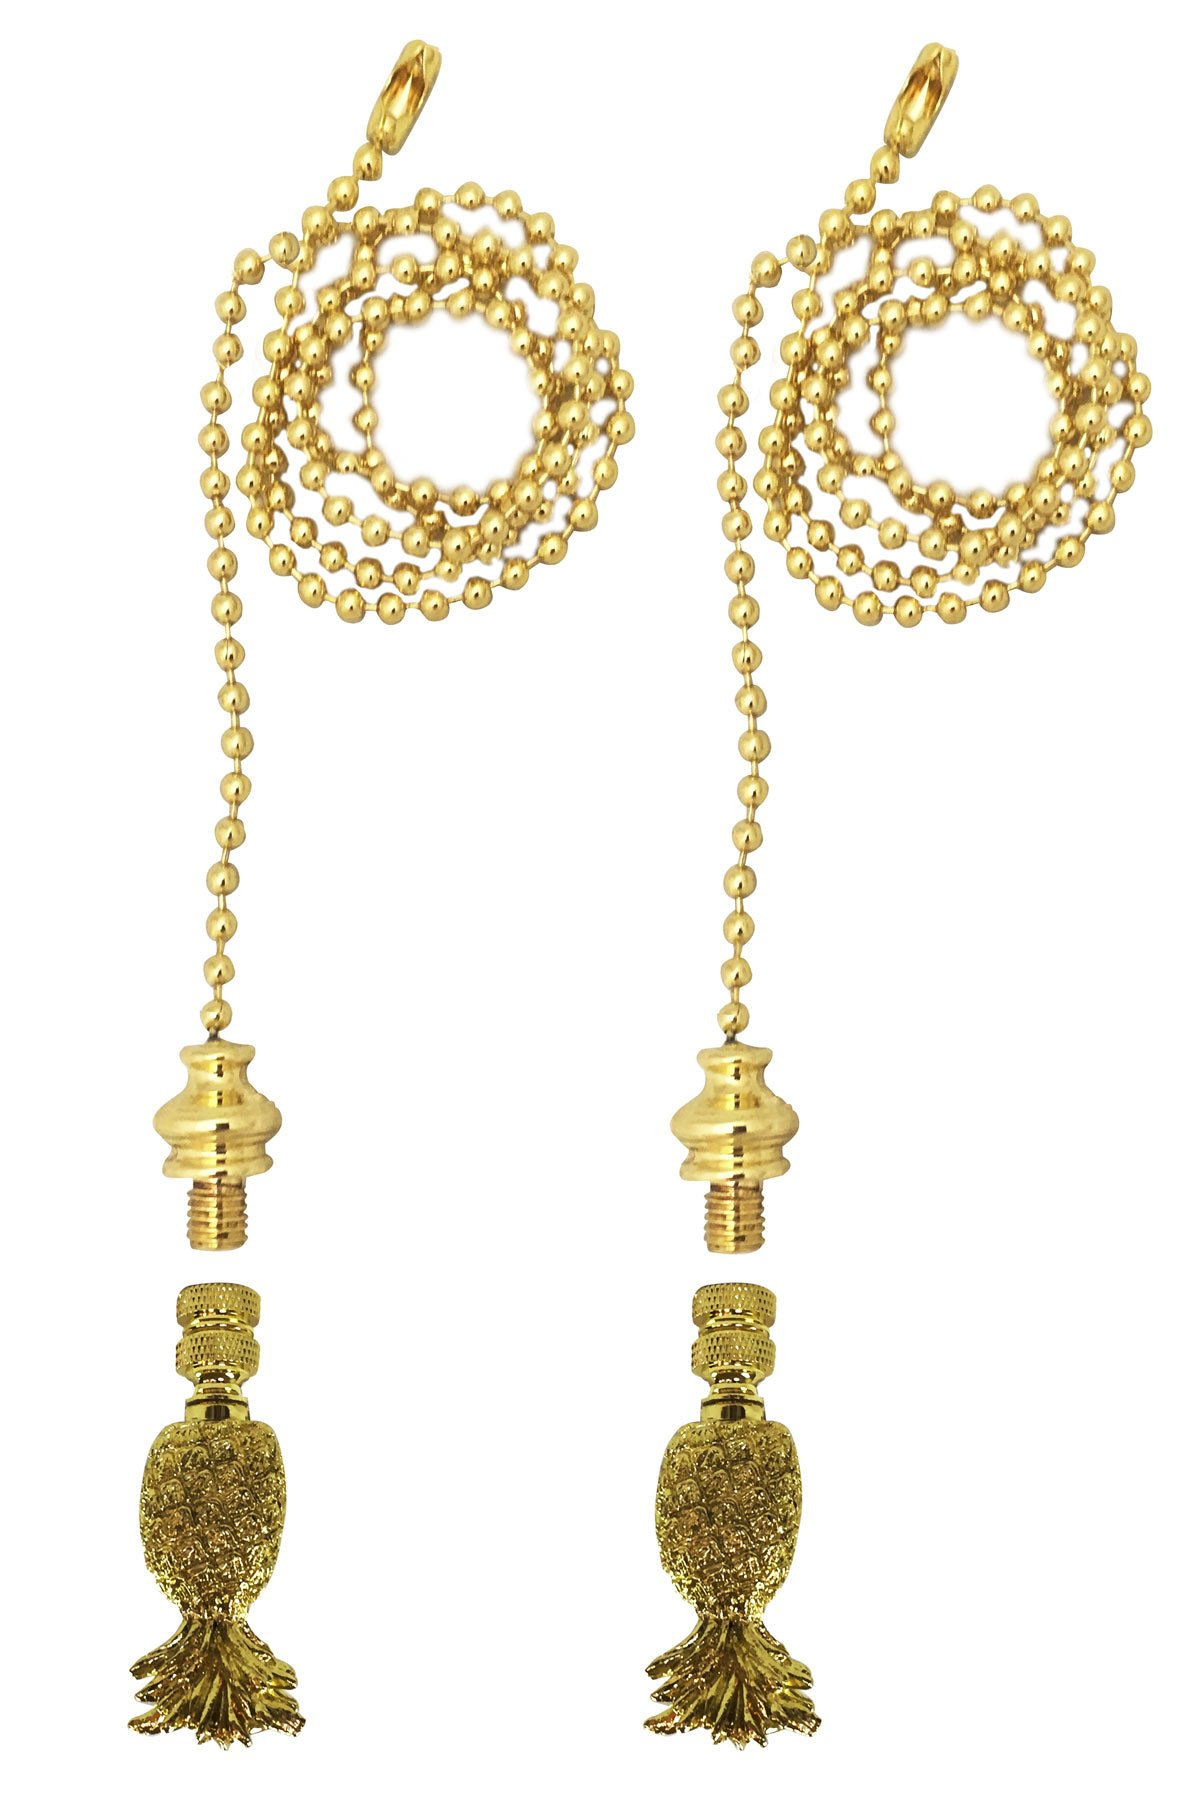 Royal Designs Fan Pull Chain with Trendy Resort Pineapple Finial – Polished Brass – Set of 2